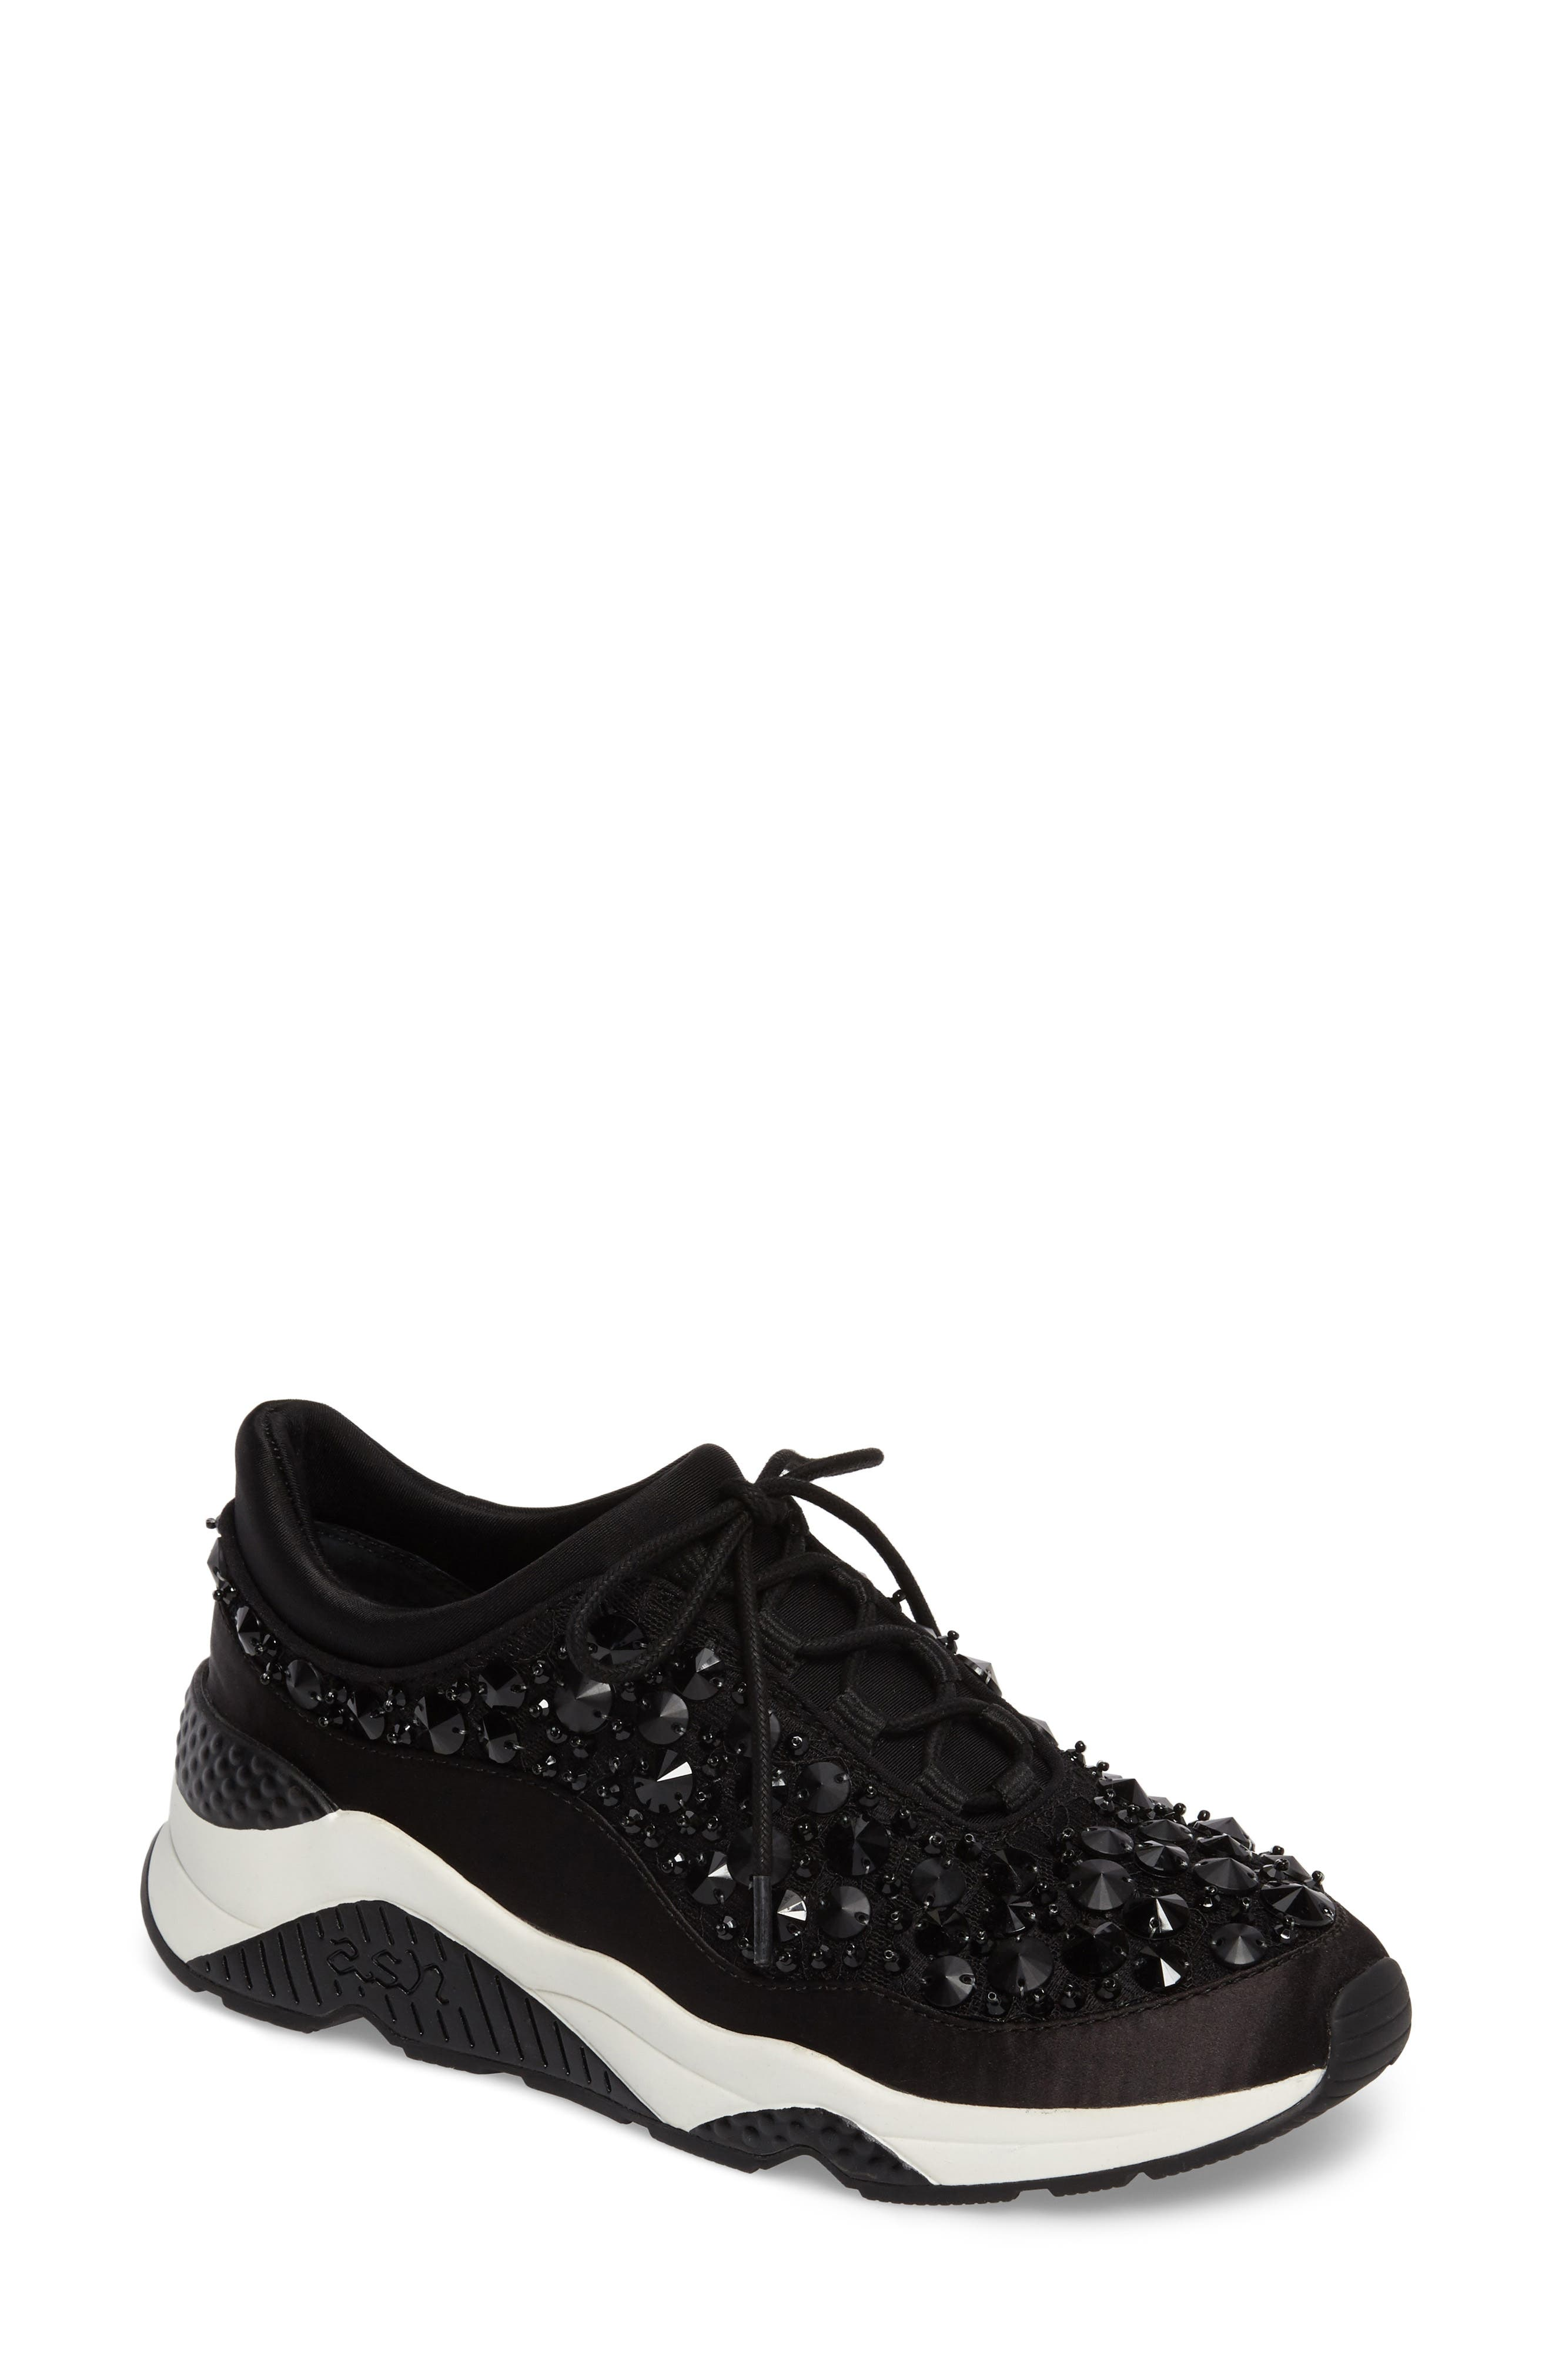 Muse Beads Sneaker,                             Main thumbnail 1, color,                             001